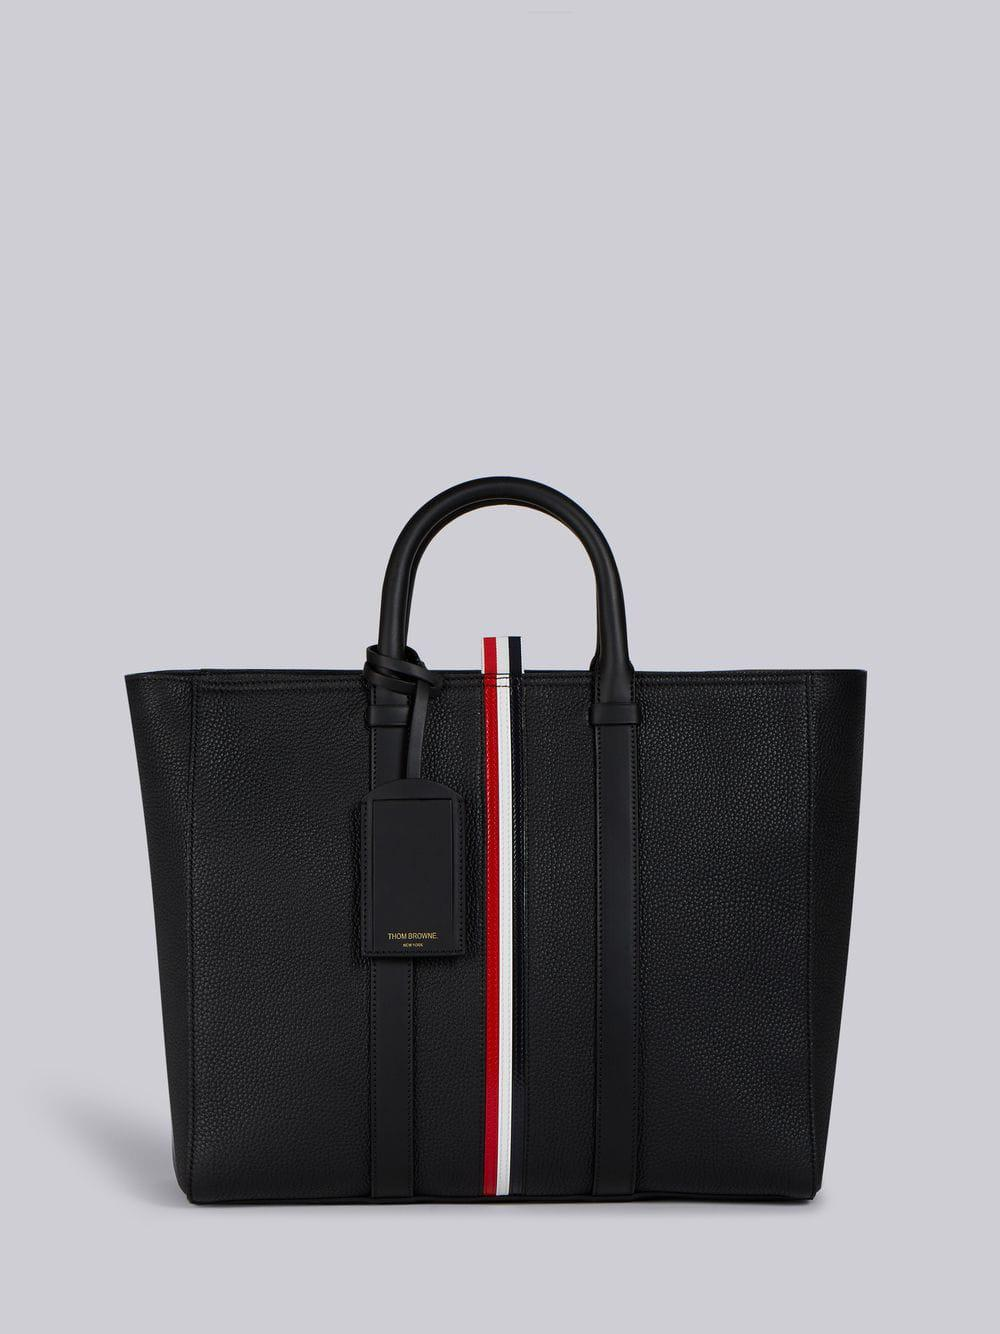 Thom Browne Handbag In Black